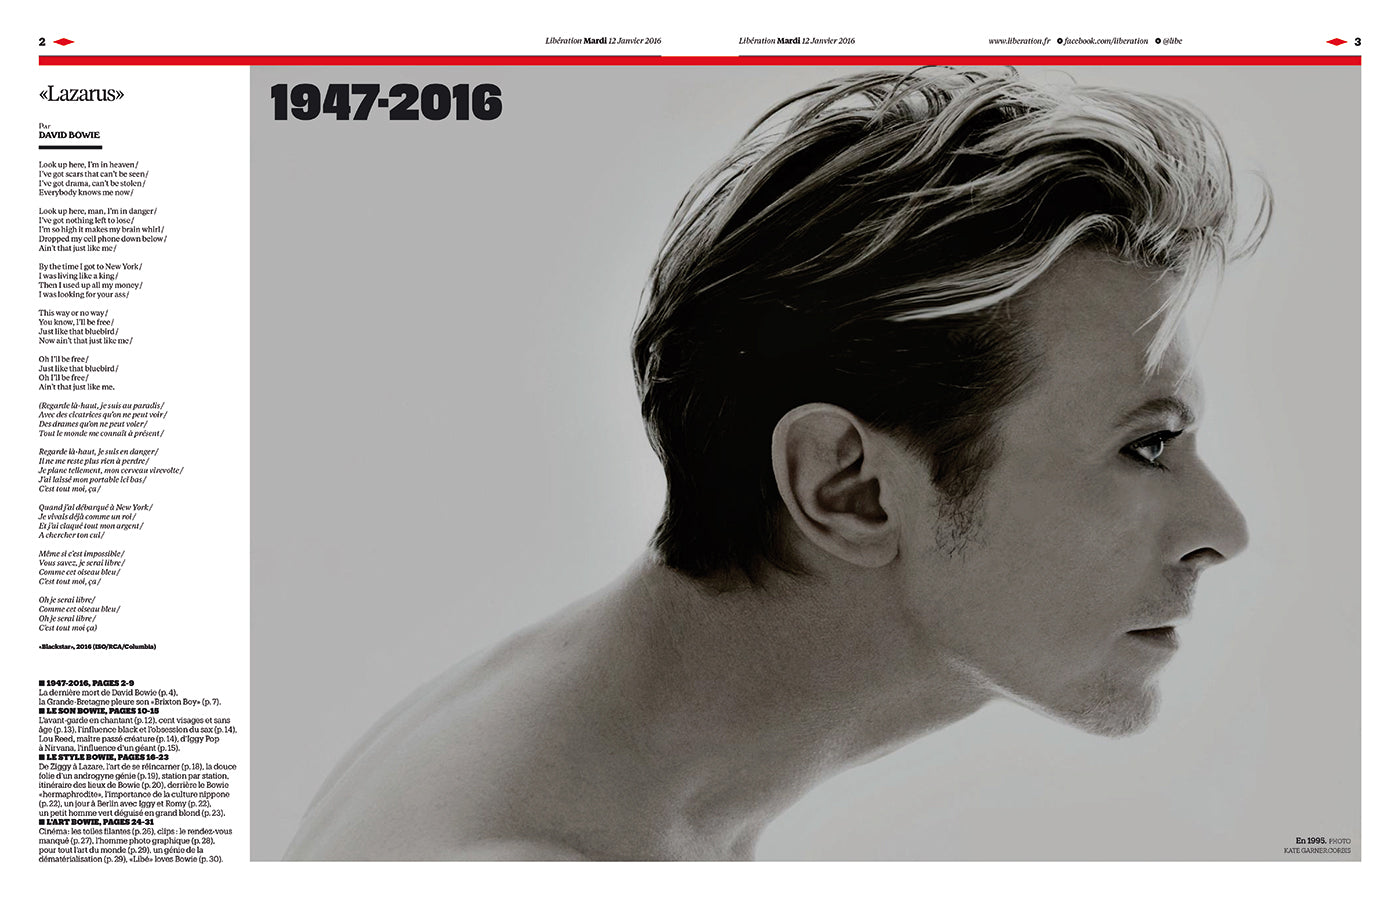 David Bowie in the French newspaper Libération on the occasion of the artist's death in 2016. (Photo: Libération)